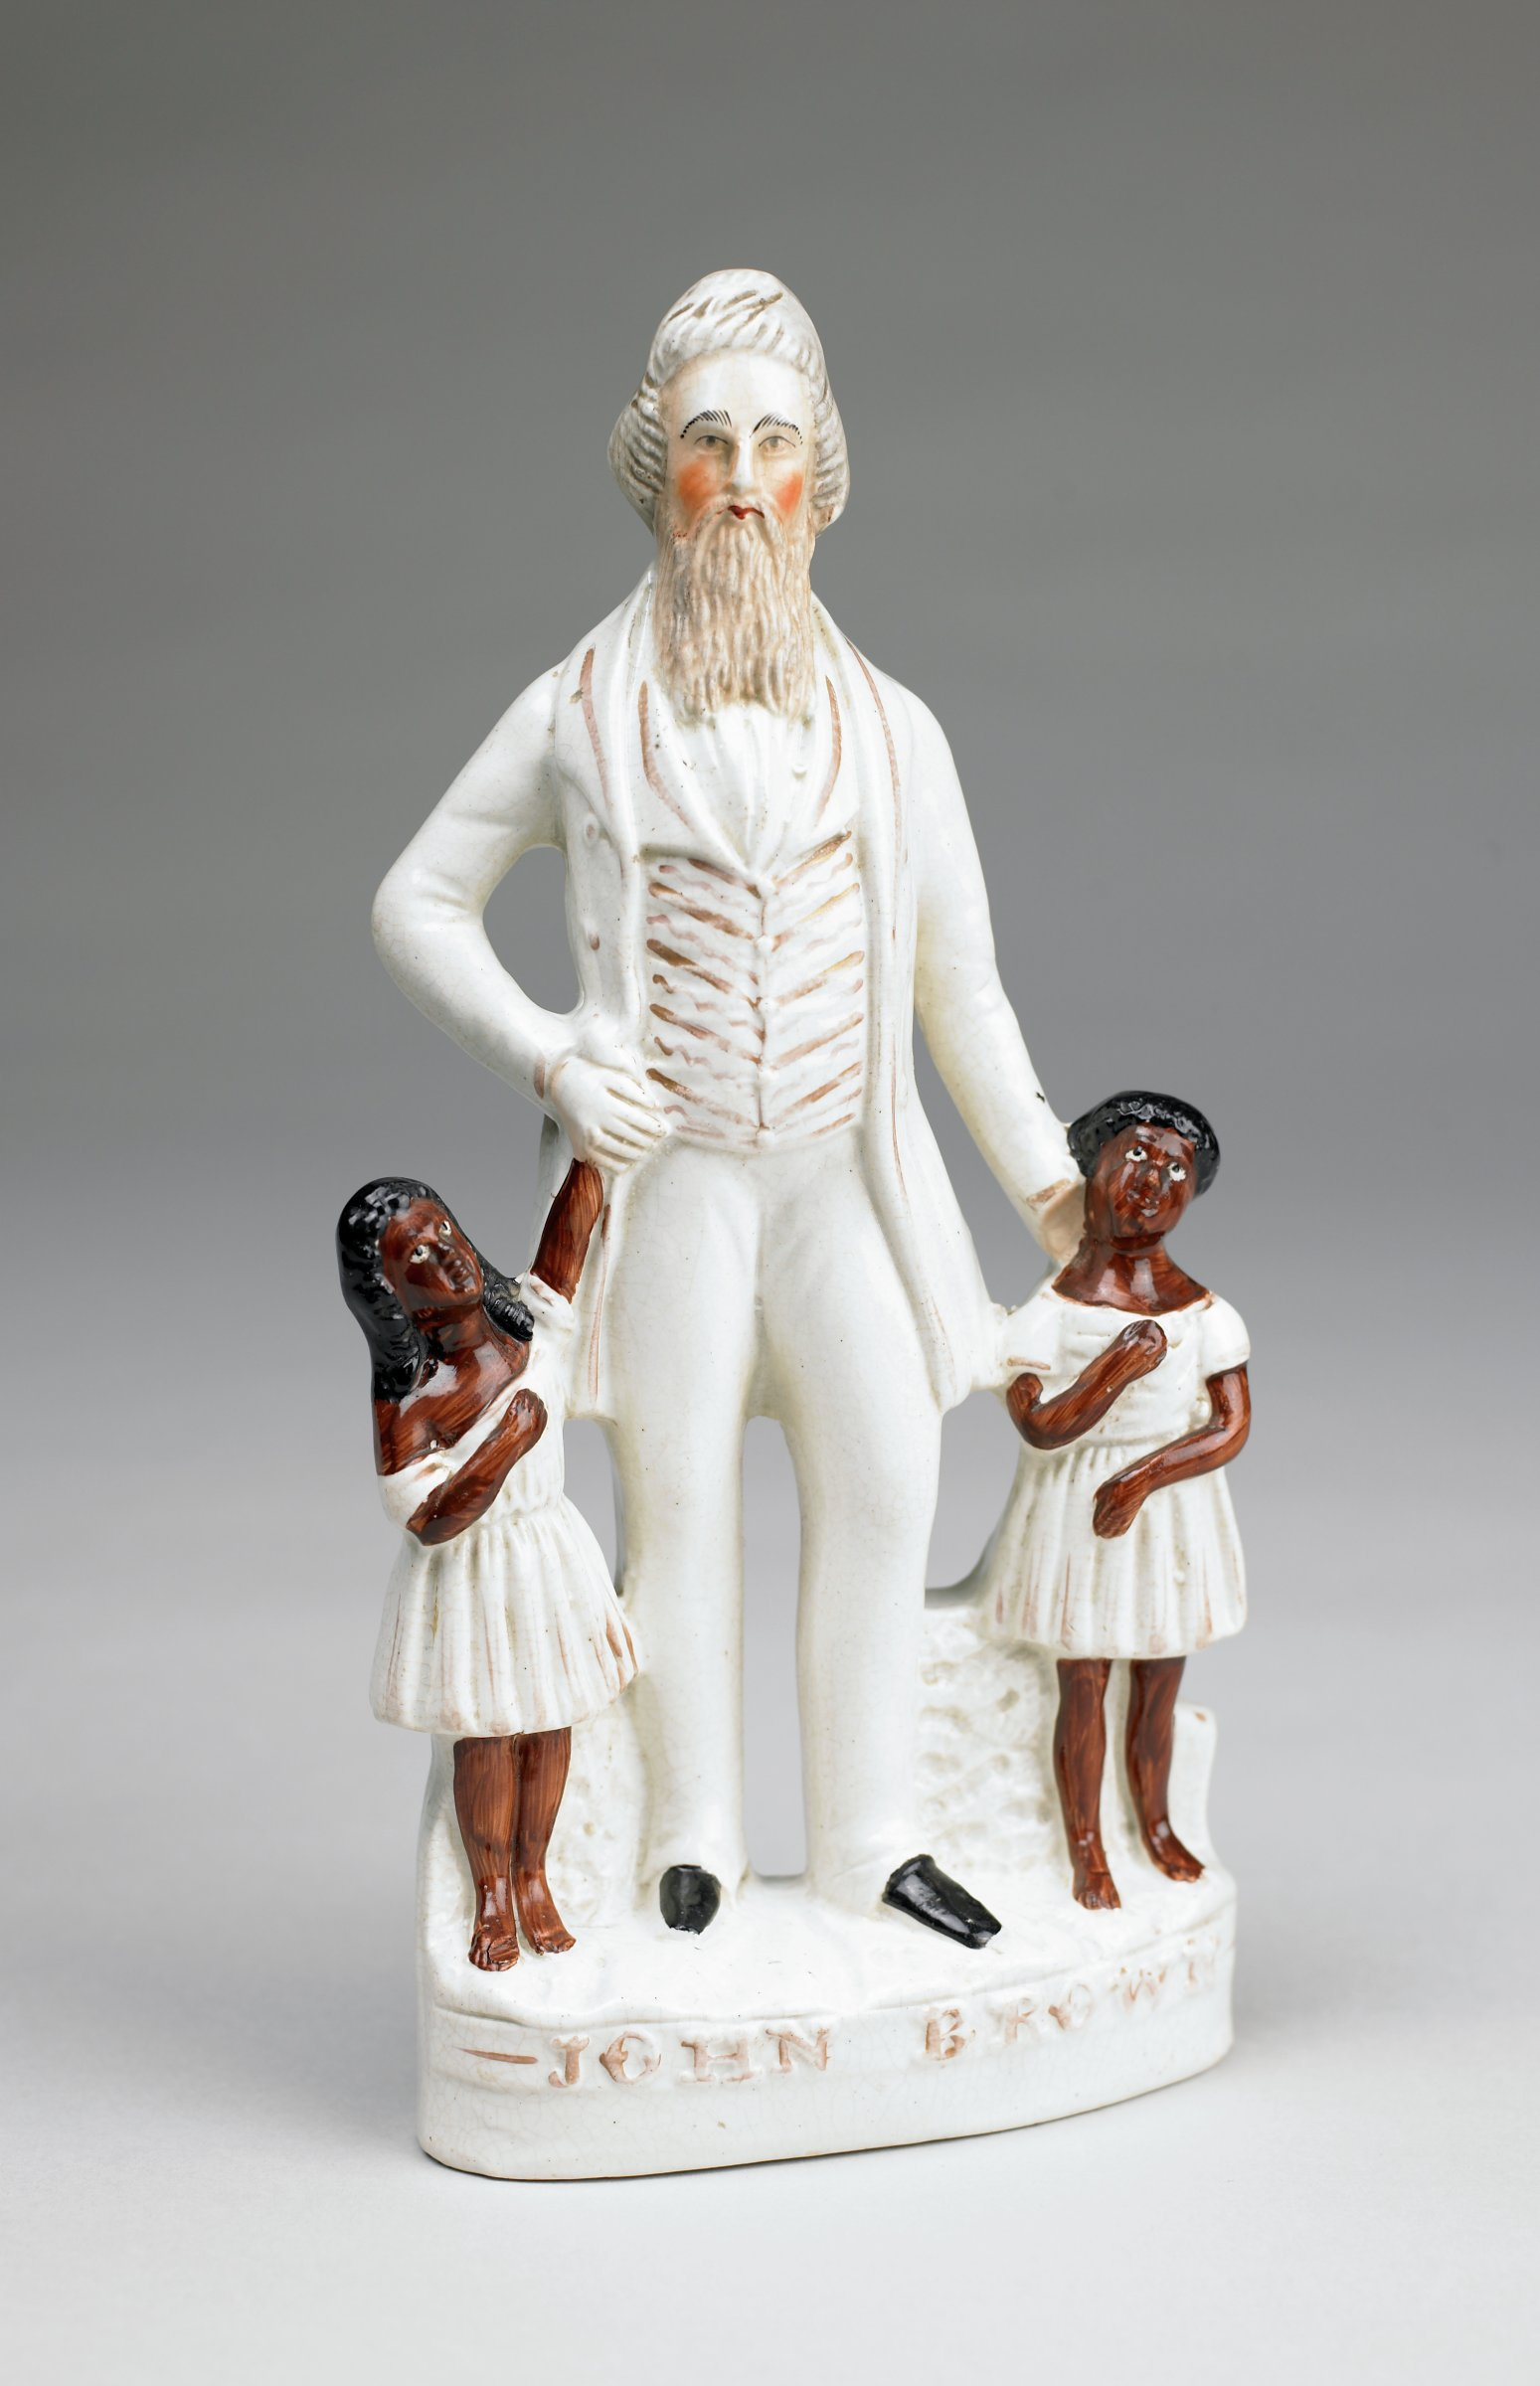 Tall creamware flat-back figural group of abolitionist John Brown with two small African-American girls in white dresses on an oval base with the name JOHN BROWN on the front, the skin of the girls glazed dark brown, the hair black, Brown's beard glazed brown and his cheeks rosy, otherwise his suit is white with details picked out in bronze lustre, his shoes black.